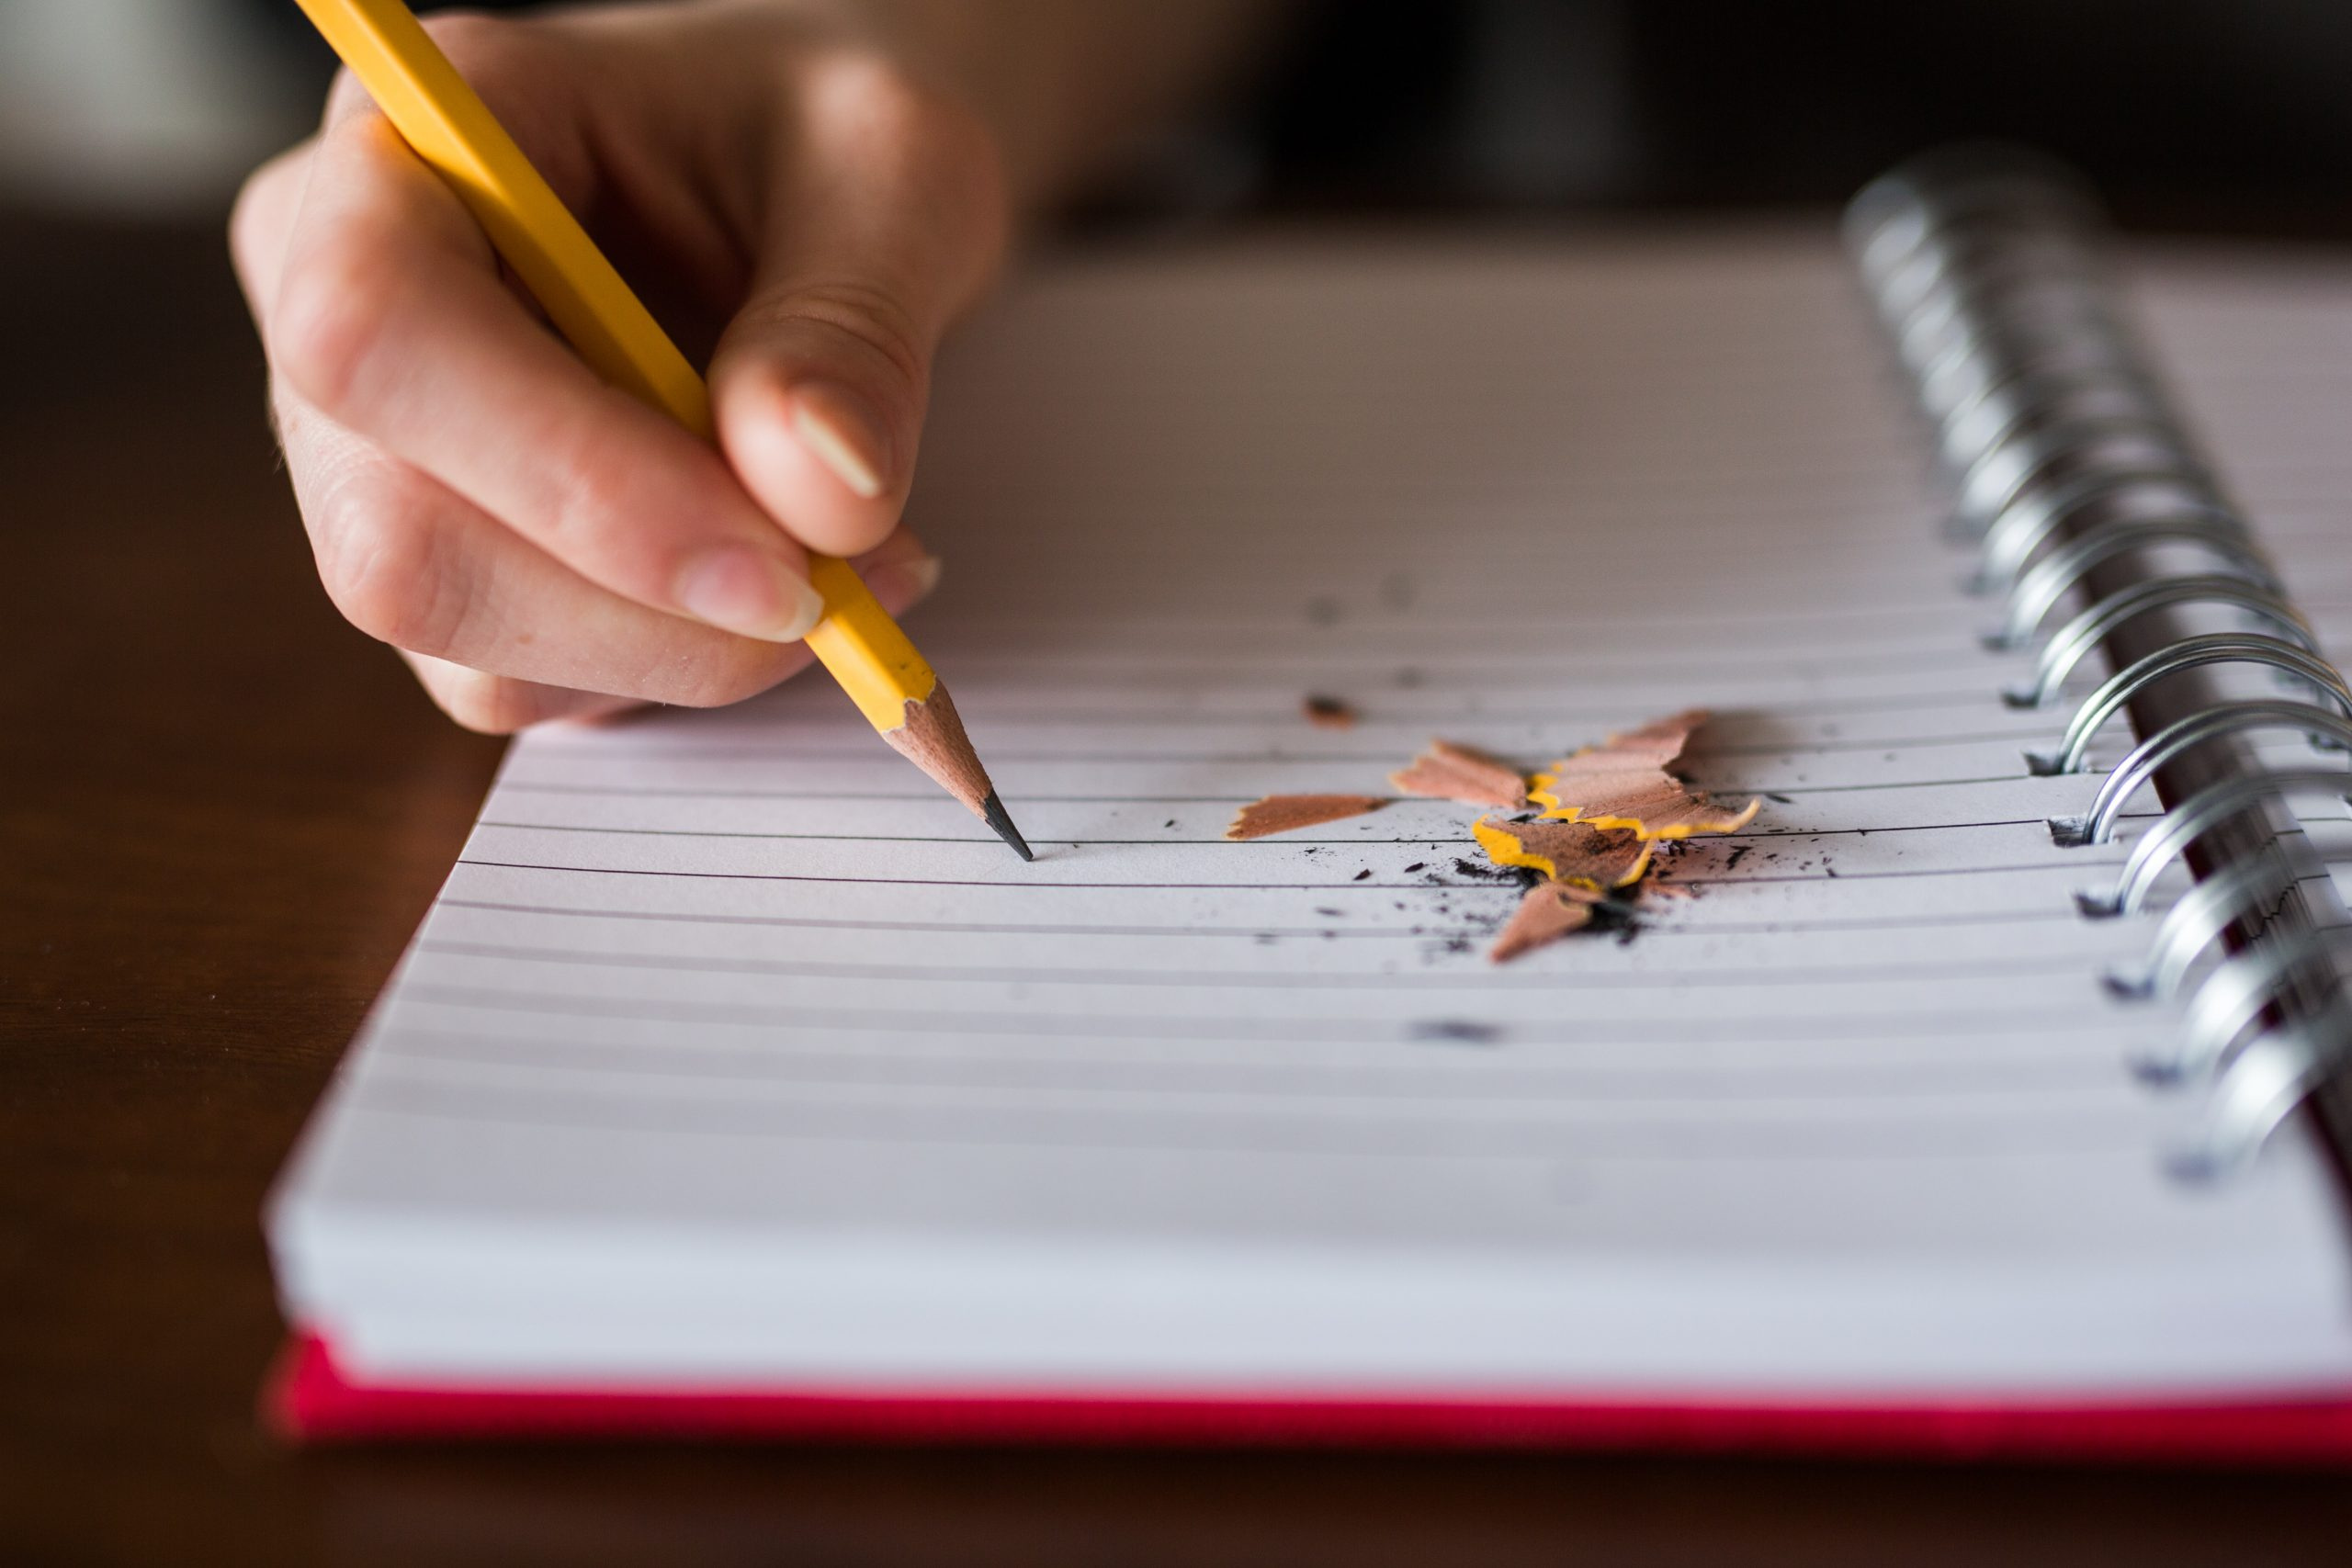 The image shows a lined notebook and a hand holding a pencil. Pencil sharpenings are on the page.